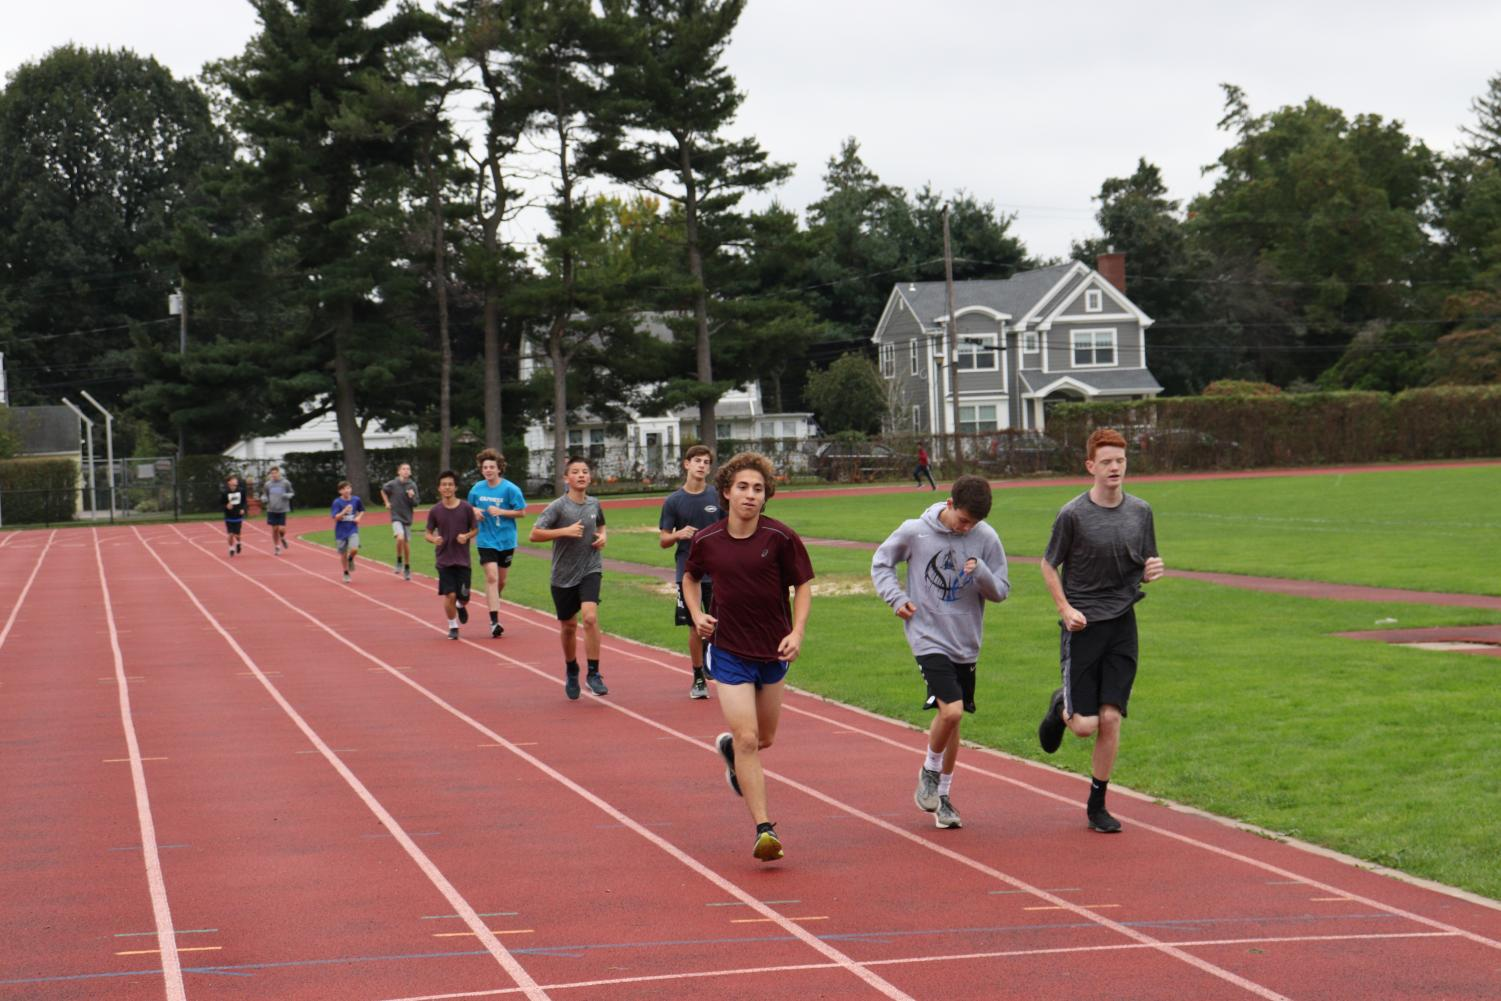 Max Friedman, Kevin Taylor, and Colin Funk finish the notorious Course-Mile-Course-Mile workout before their last league meet of the season.